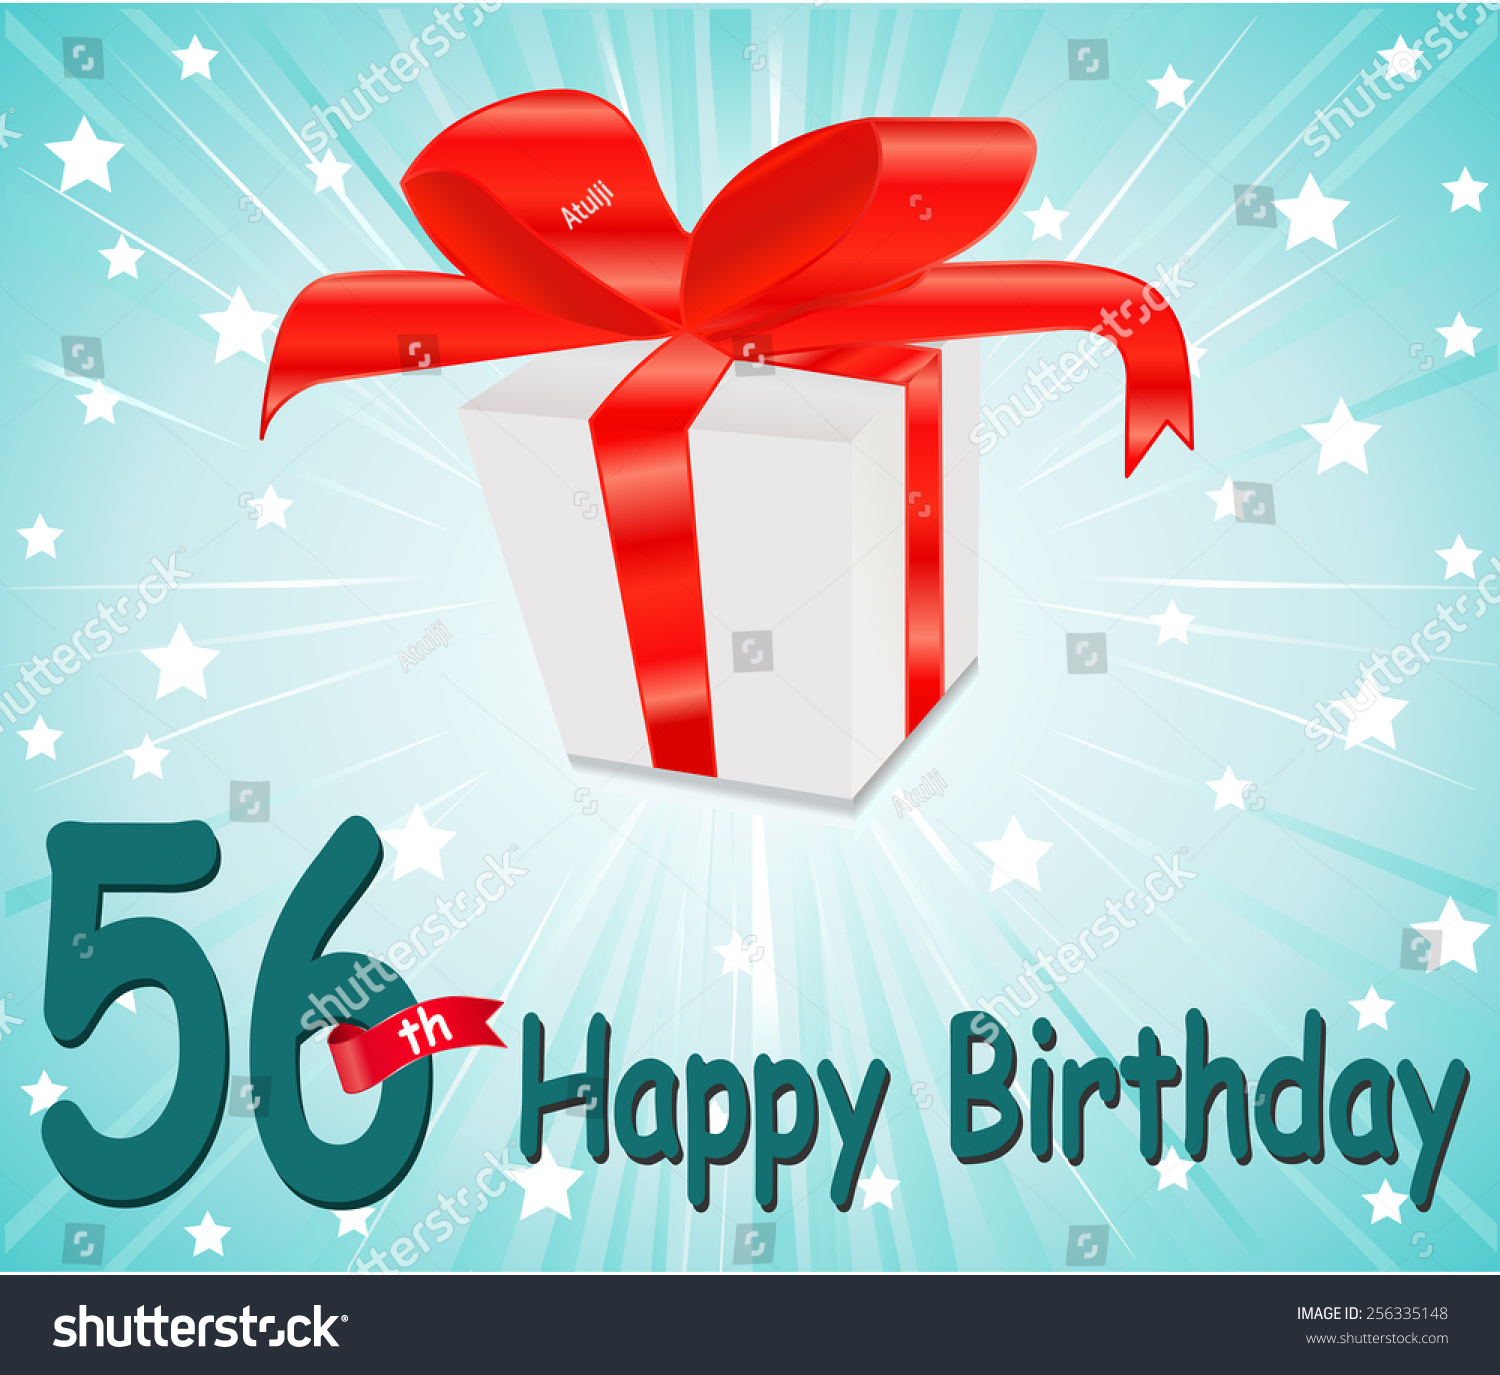 56 Year Happy Birthday Card With Gift And Colorful Background In Vector EPS10